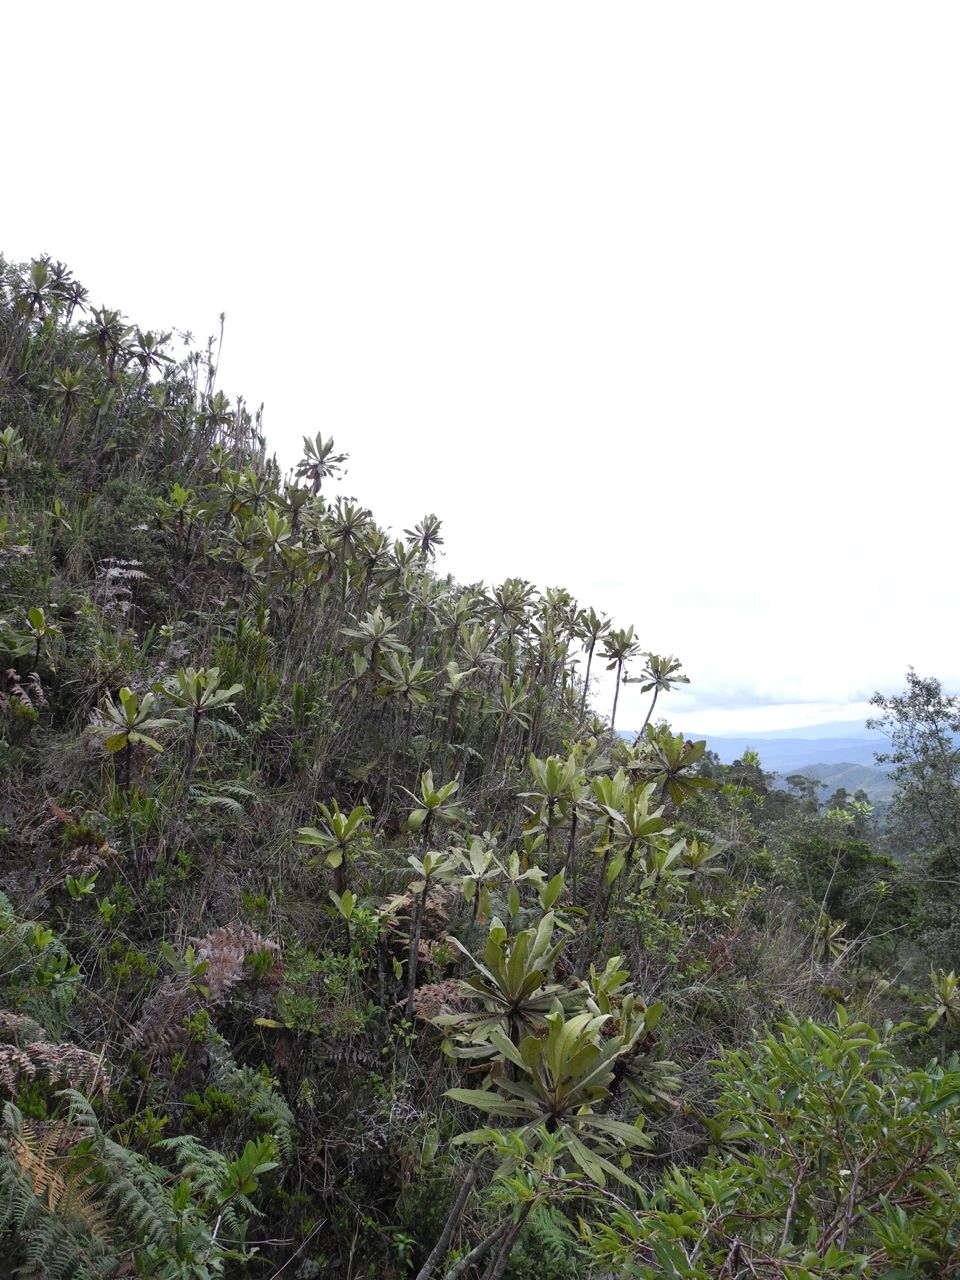 Azonal páramo at 2600 m between Arcabuco and La Palma, Boyacá, Colombia